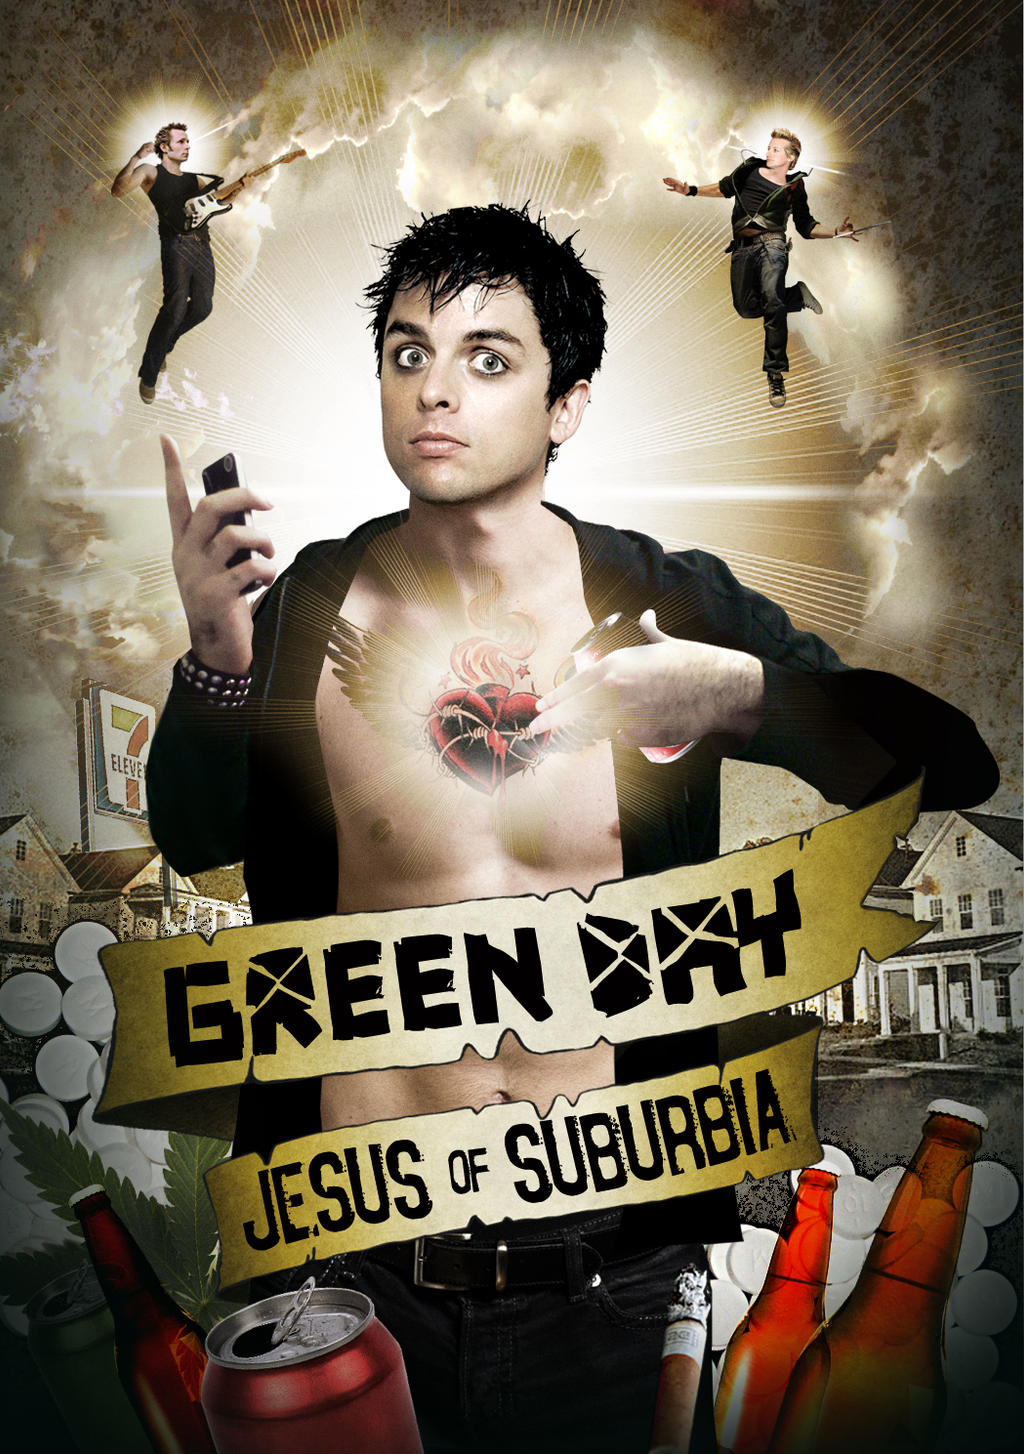 Green Day: Jesus of Suburbia by mqfbr on DeviantArt